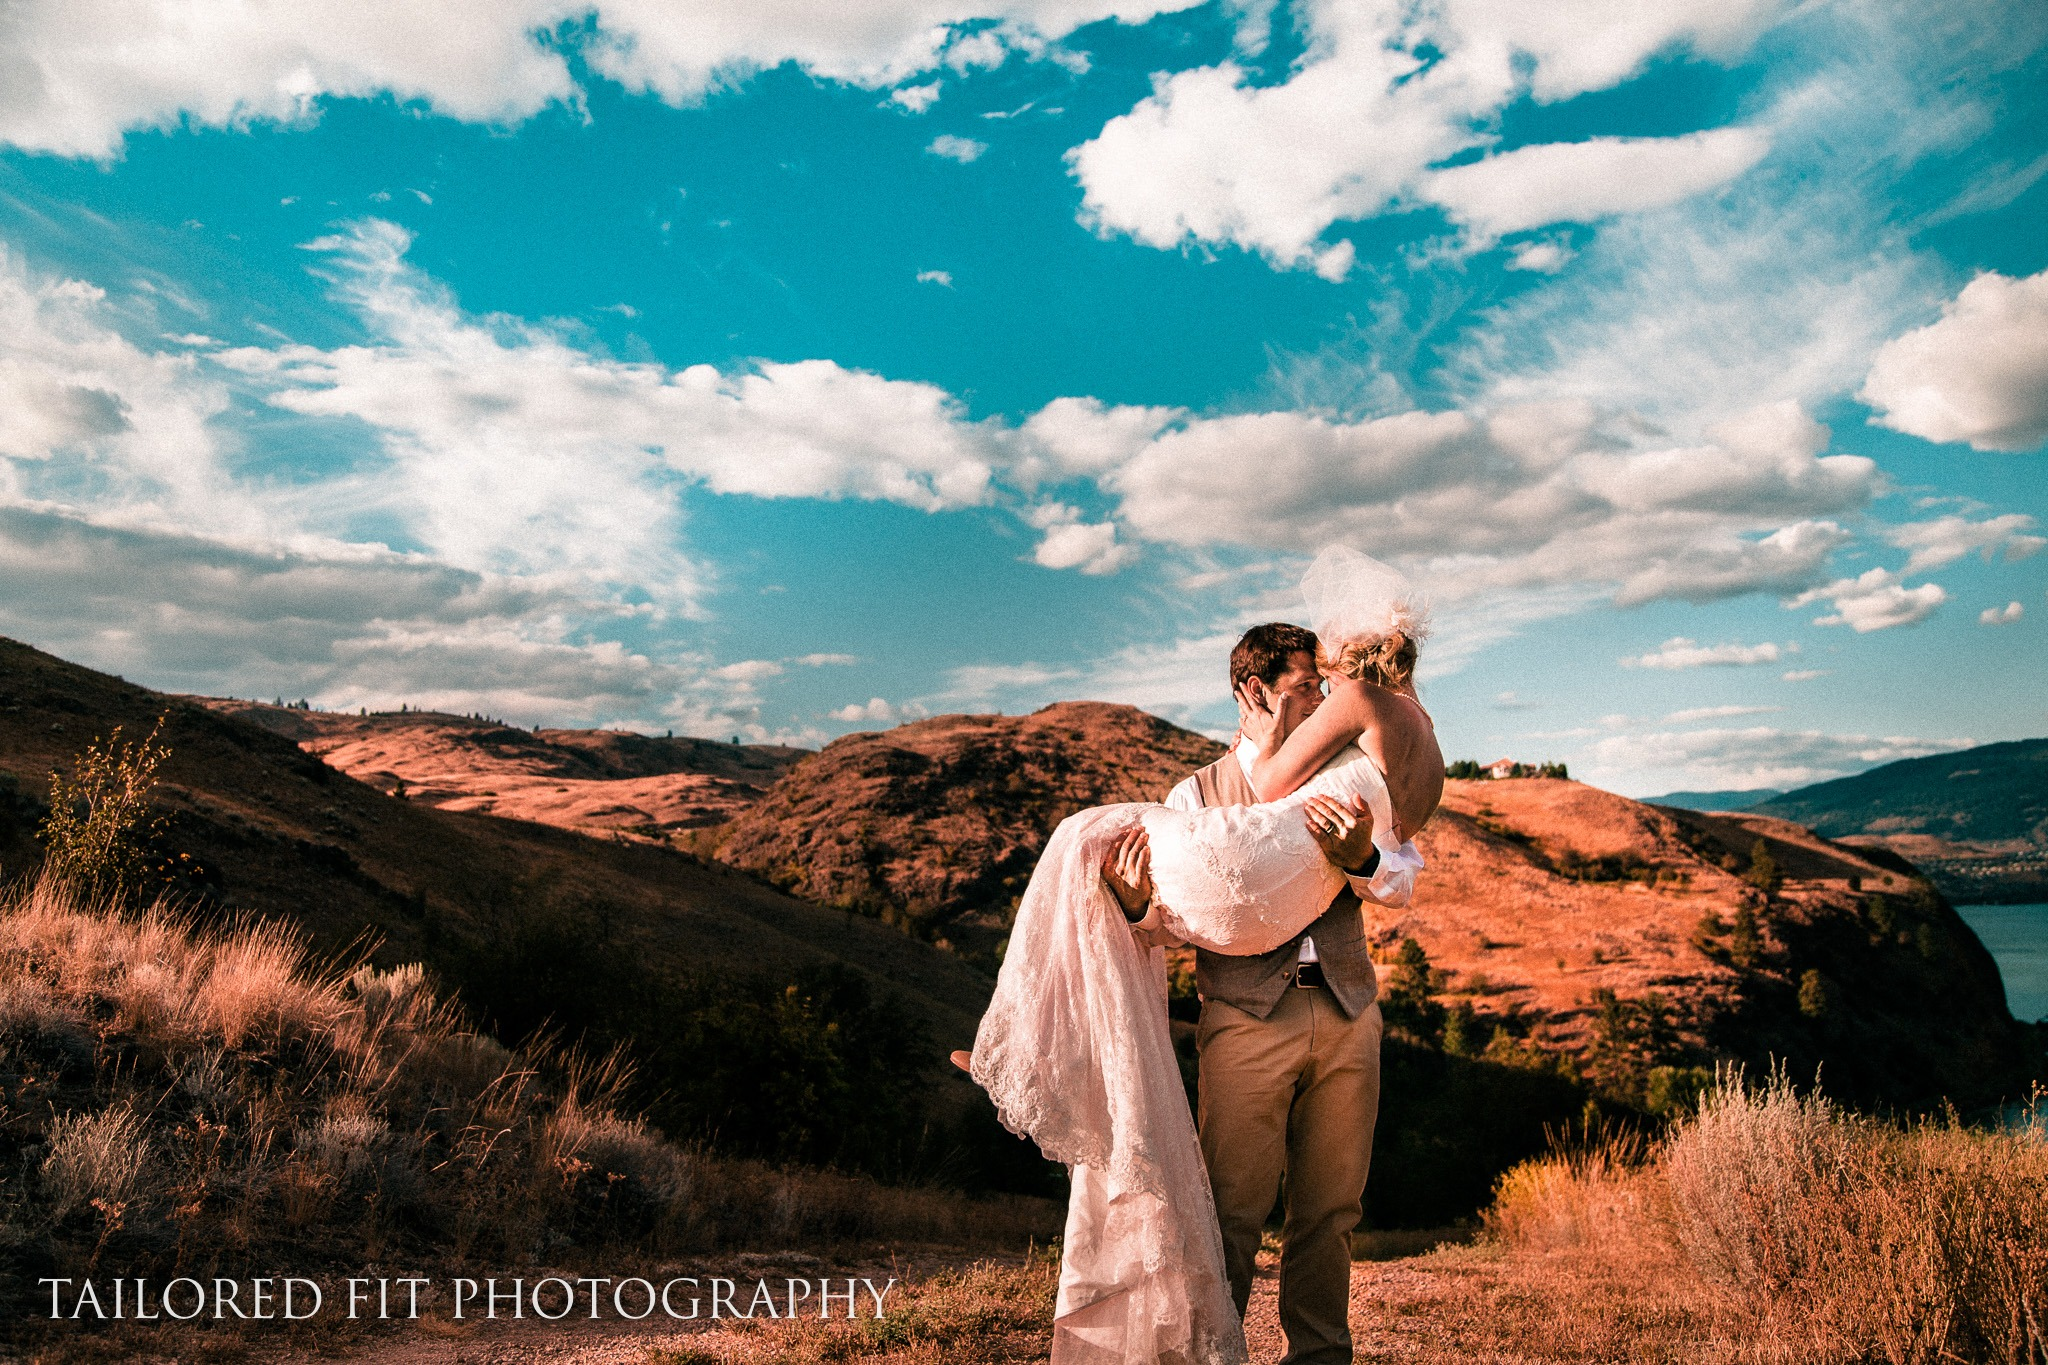 Vernon Wedding Photography - Tailored Fit Photography - Vernon Wedding Photos-0006